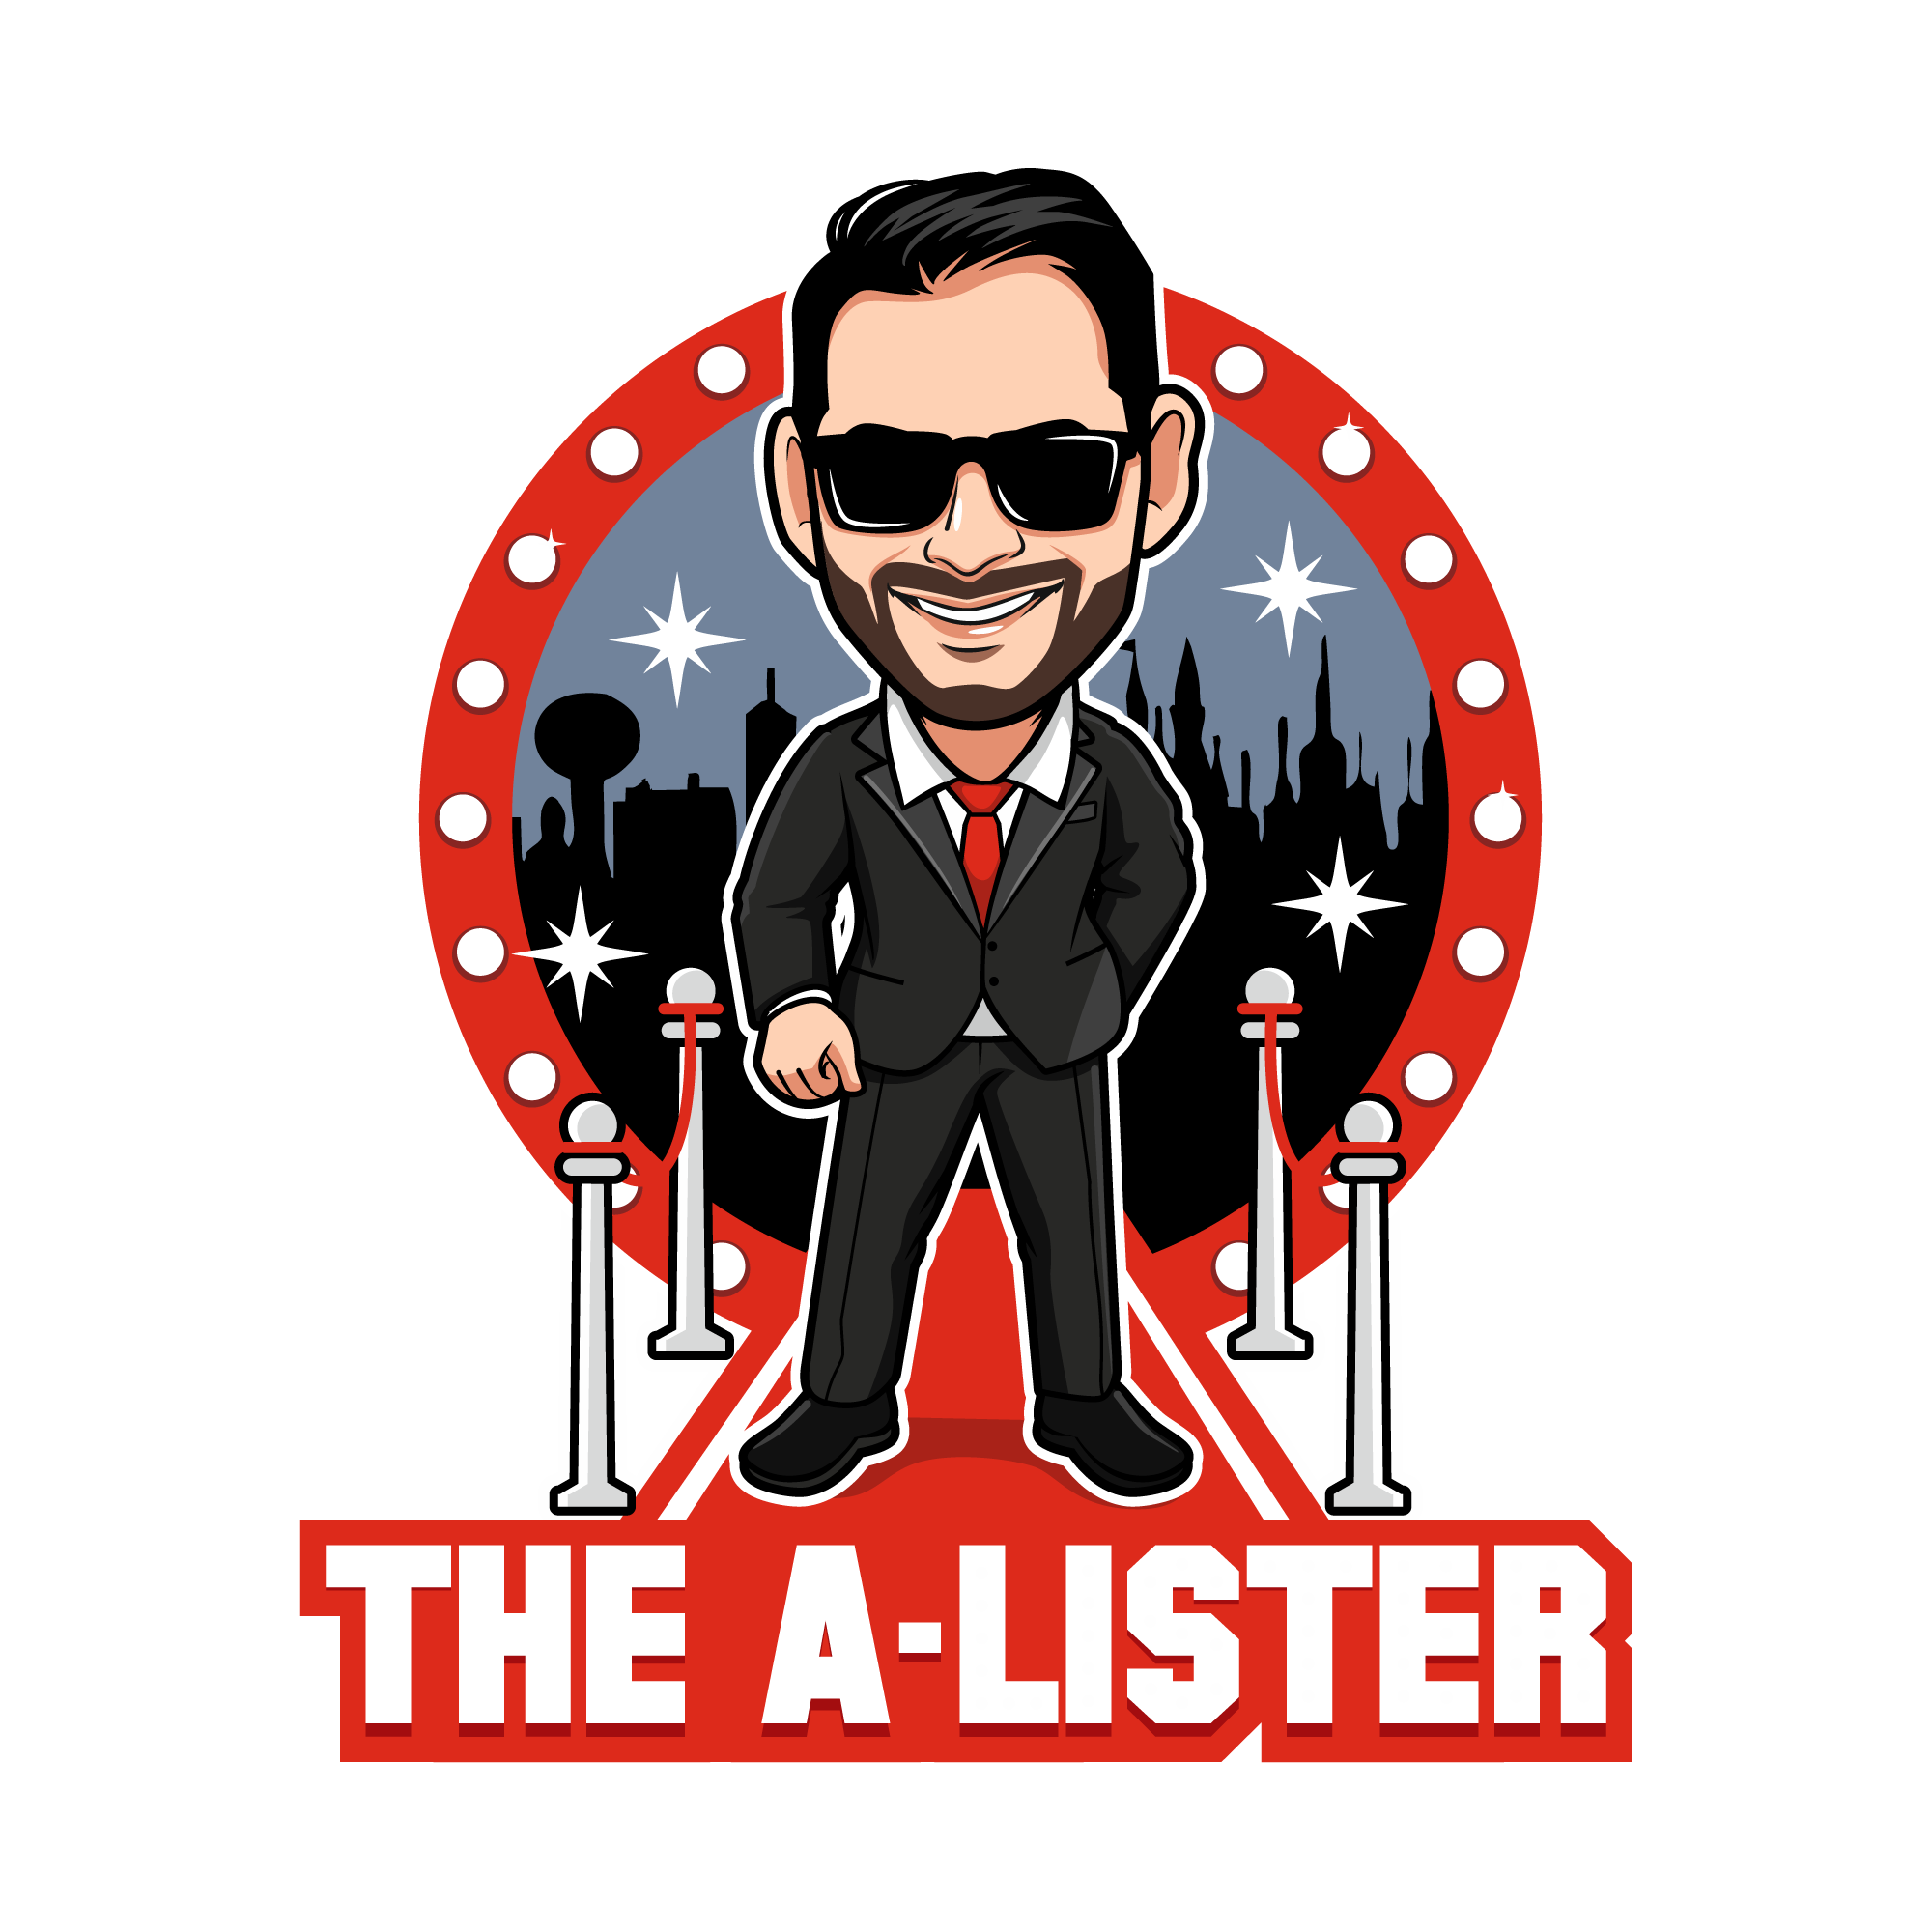 The A Lister